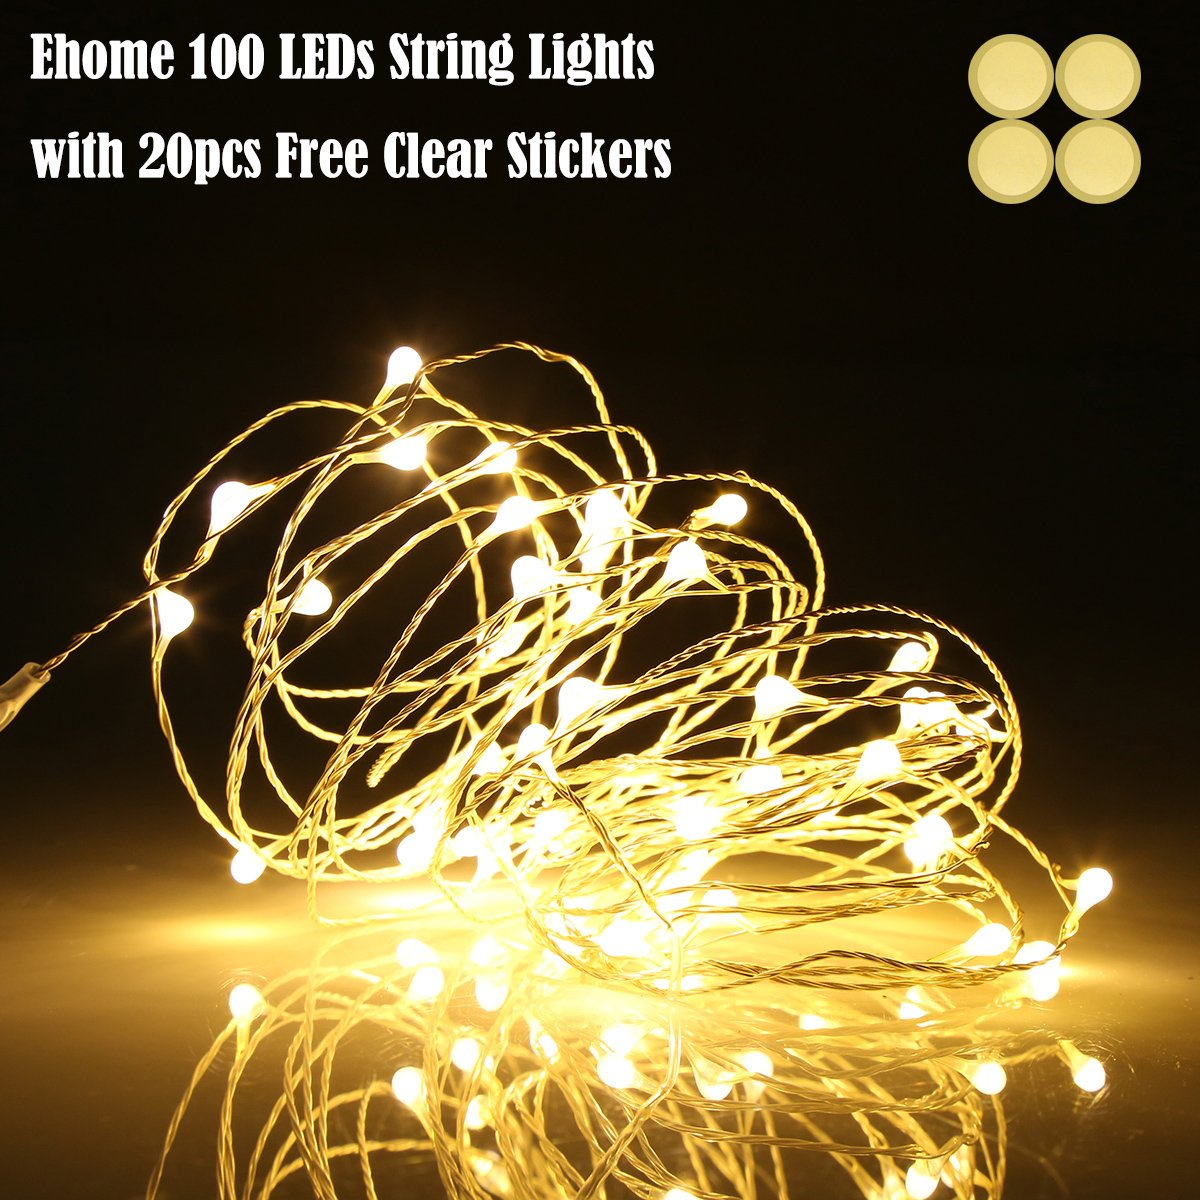 Amazon.com : Ehome 100 LED 33ft/10m Starry Fairy String Light ...